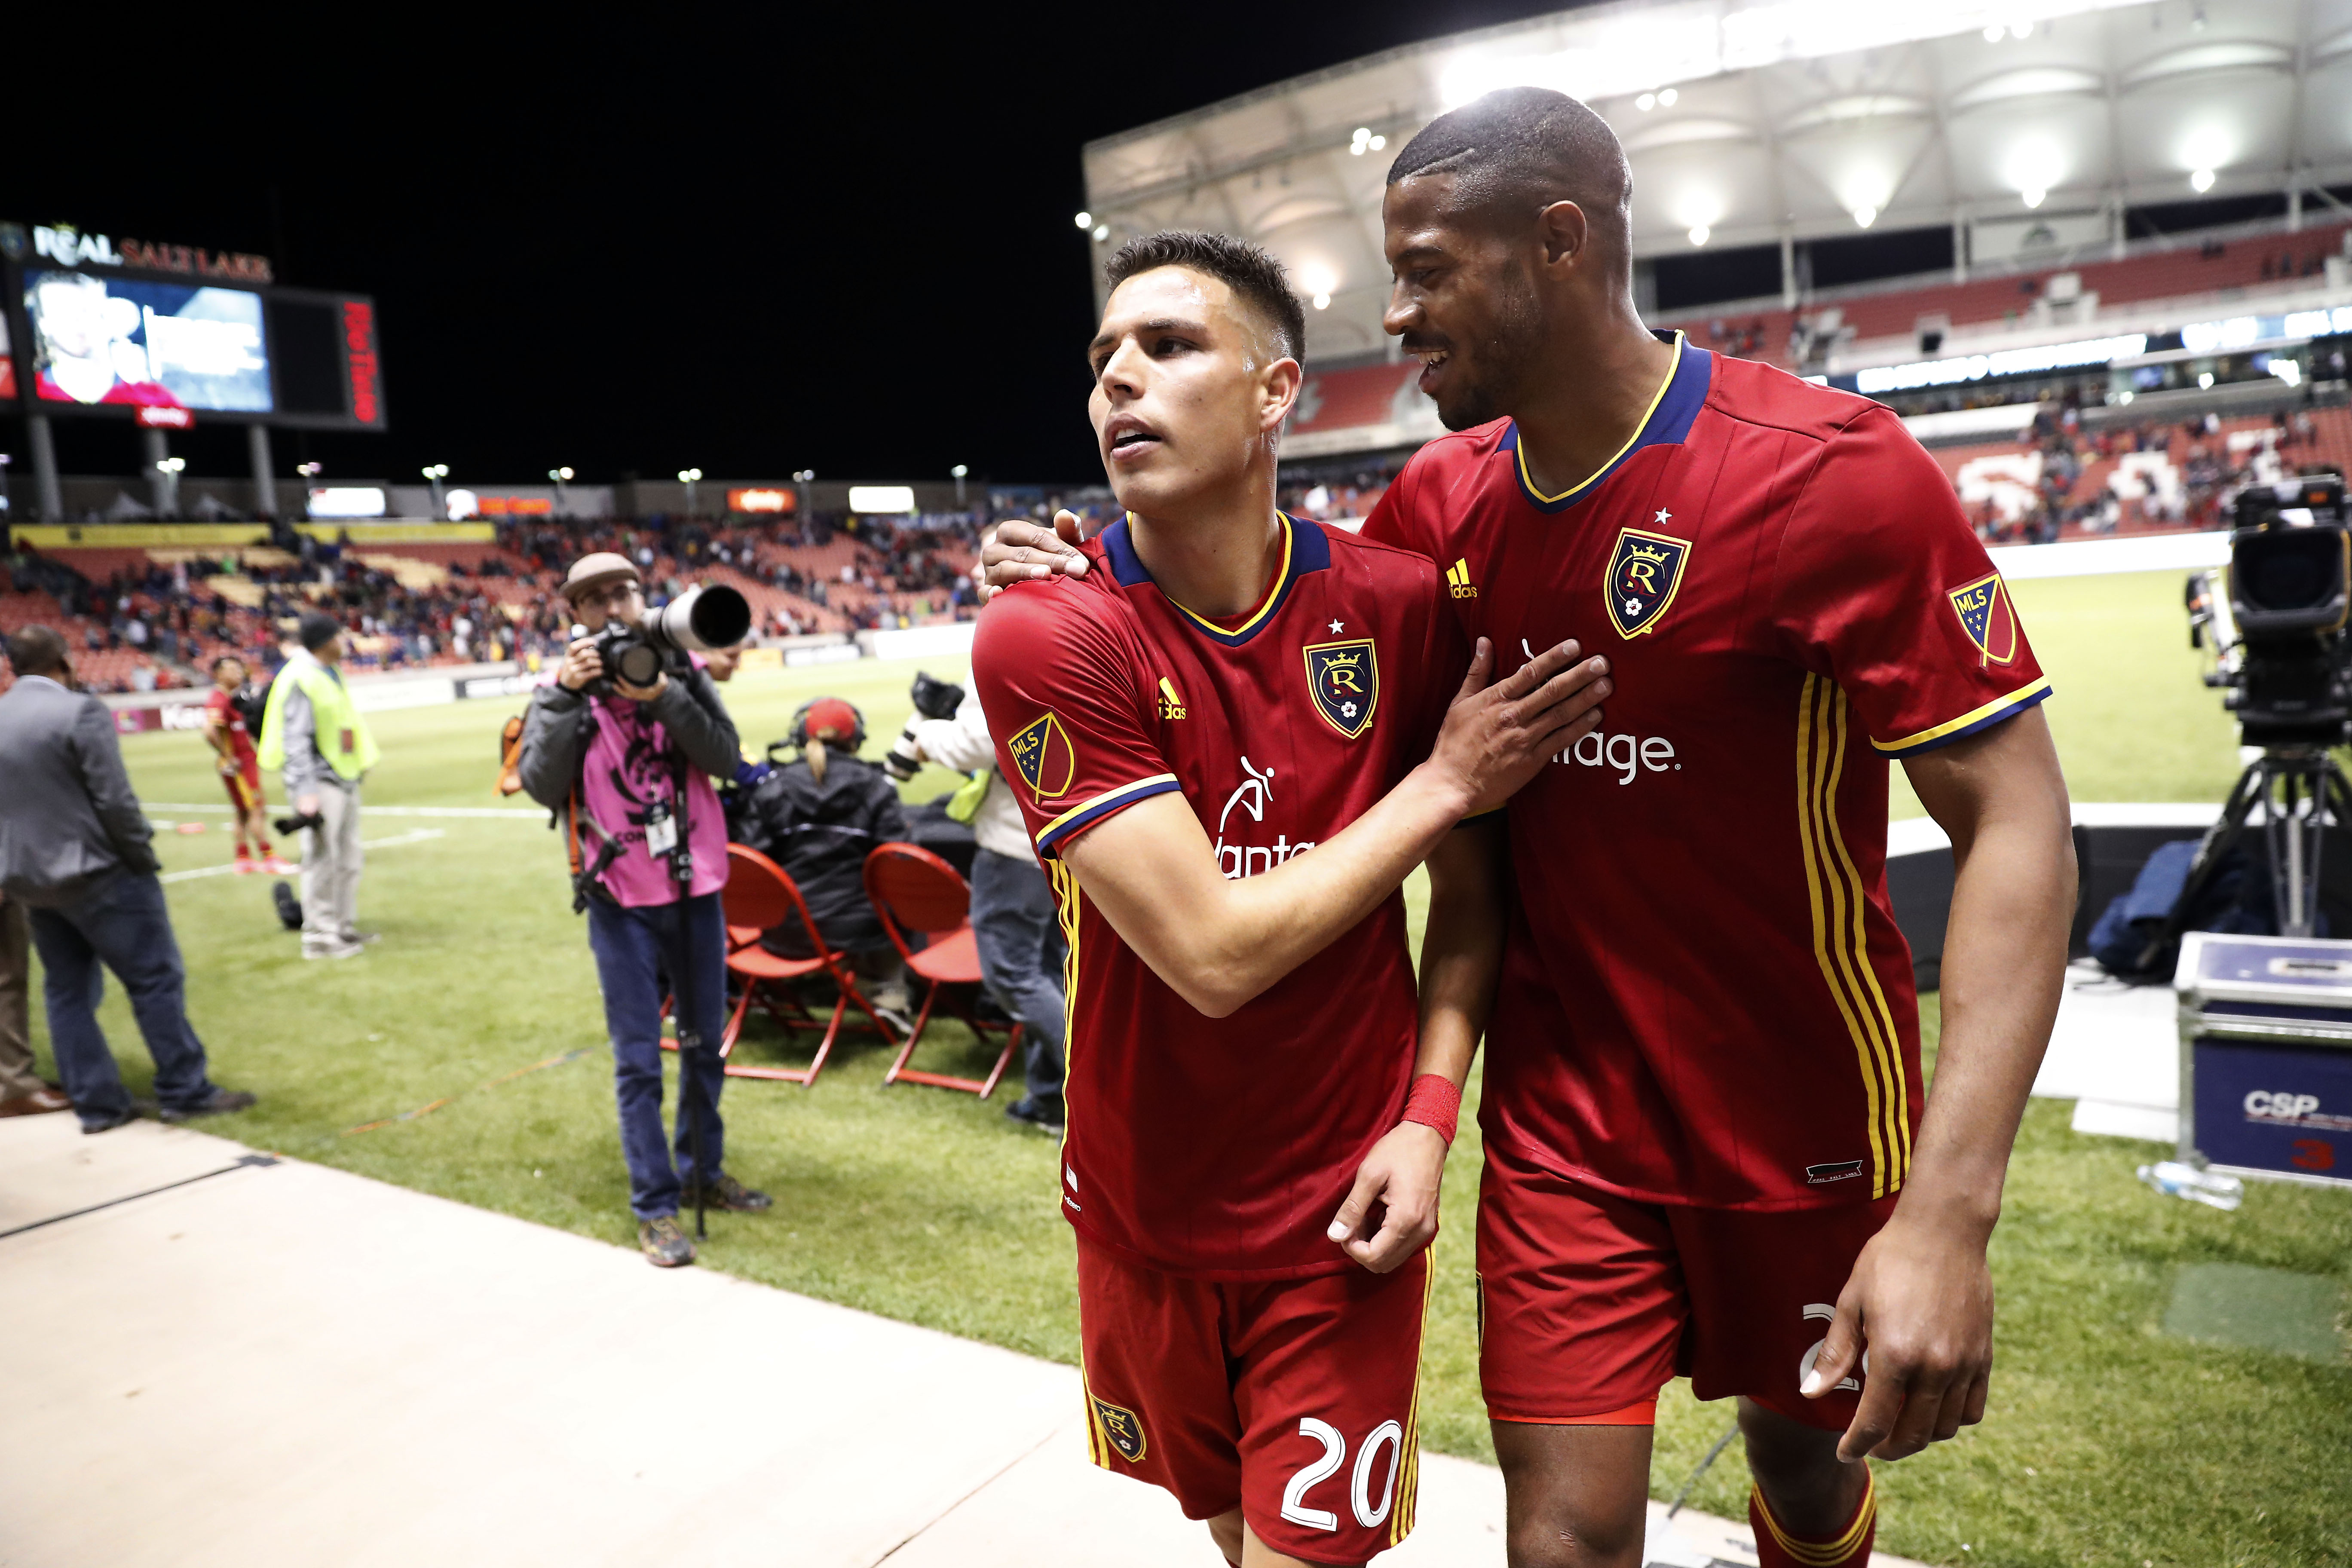 low cost 972e1 54a11 Real Salt Lake vs Sporting Kansas City: Preview and How To Watch